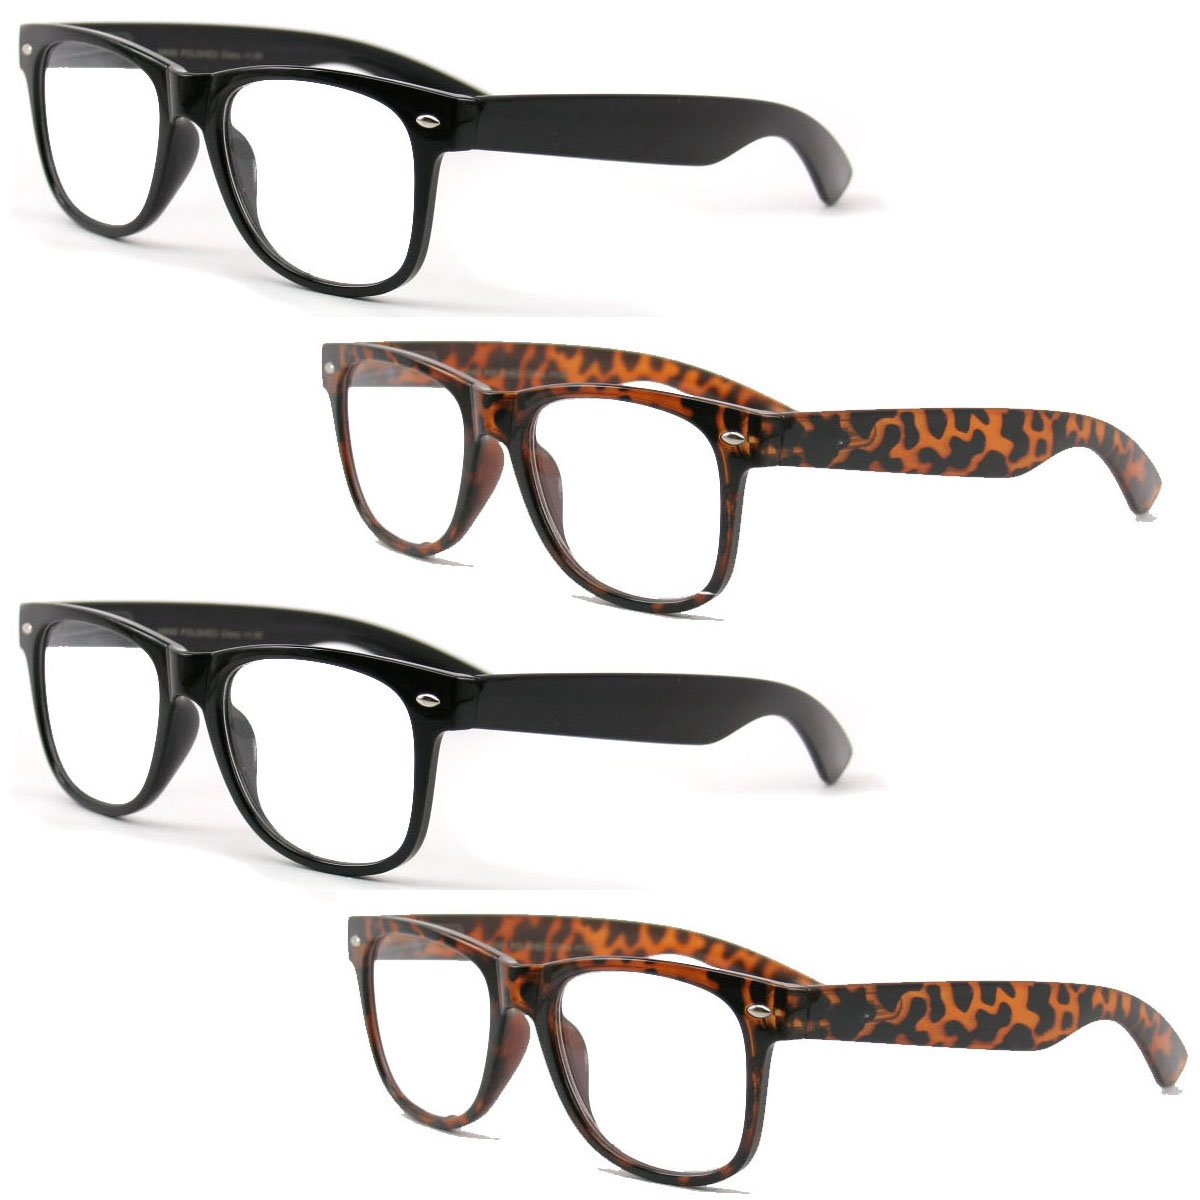 4 Pairs Reading Glasses - Comfortable Stylish Simple Readers Rx Magnification - Anti-Reflective AR Coating (2 Black 2 Tortoise, 1.50)